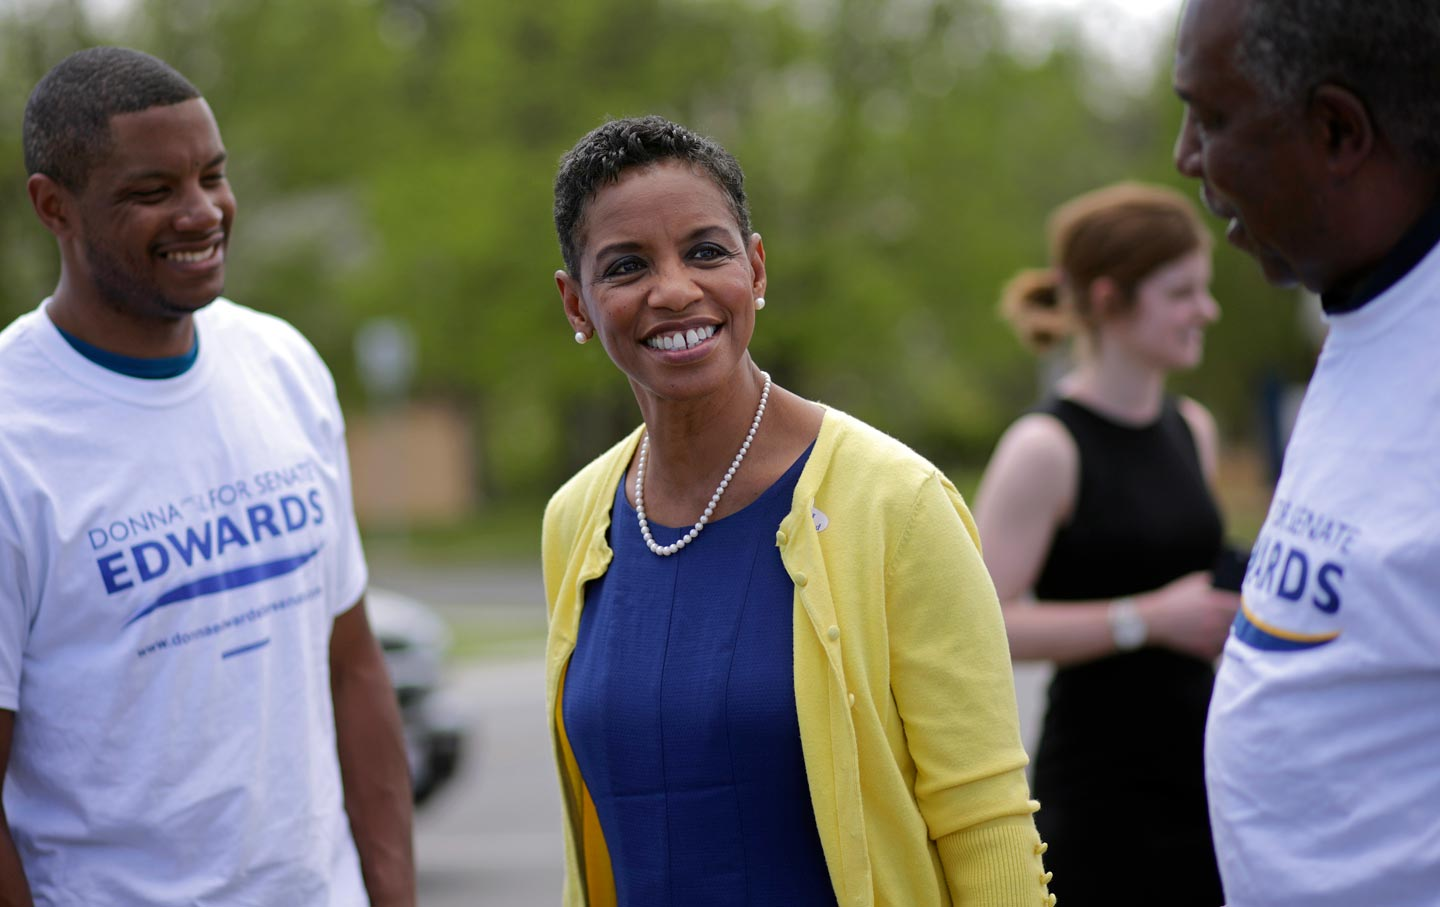 Donna_Edwards_Senate_race_ap_img